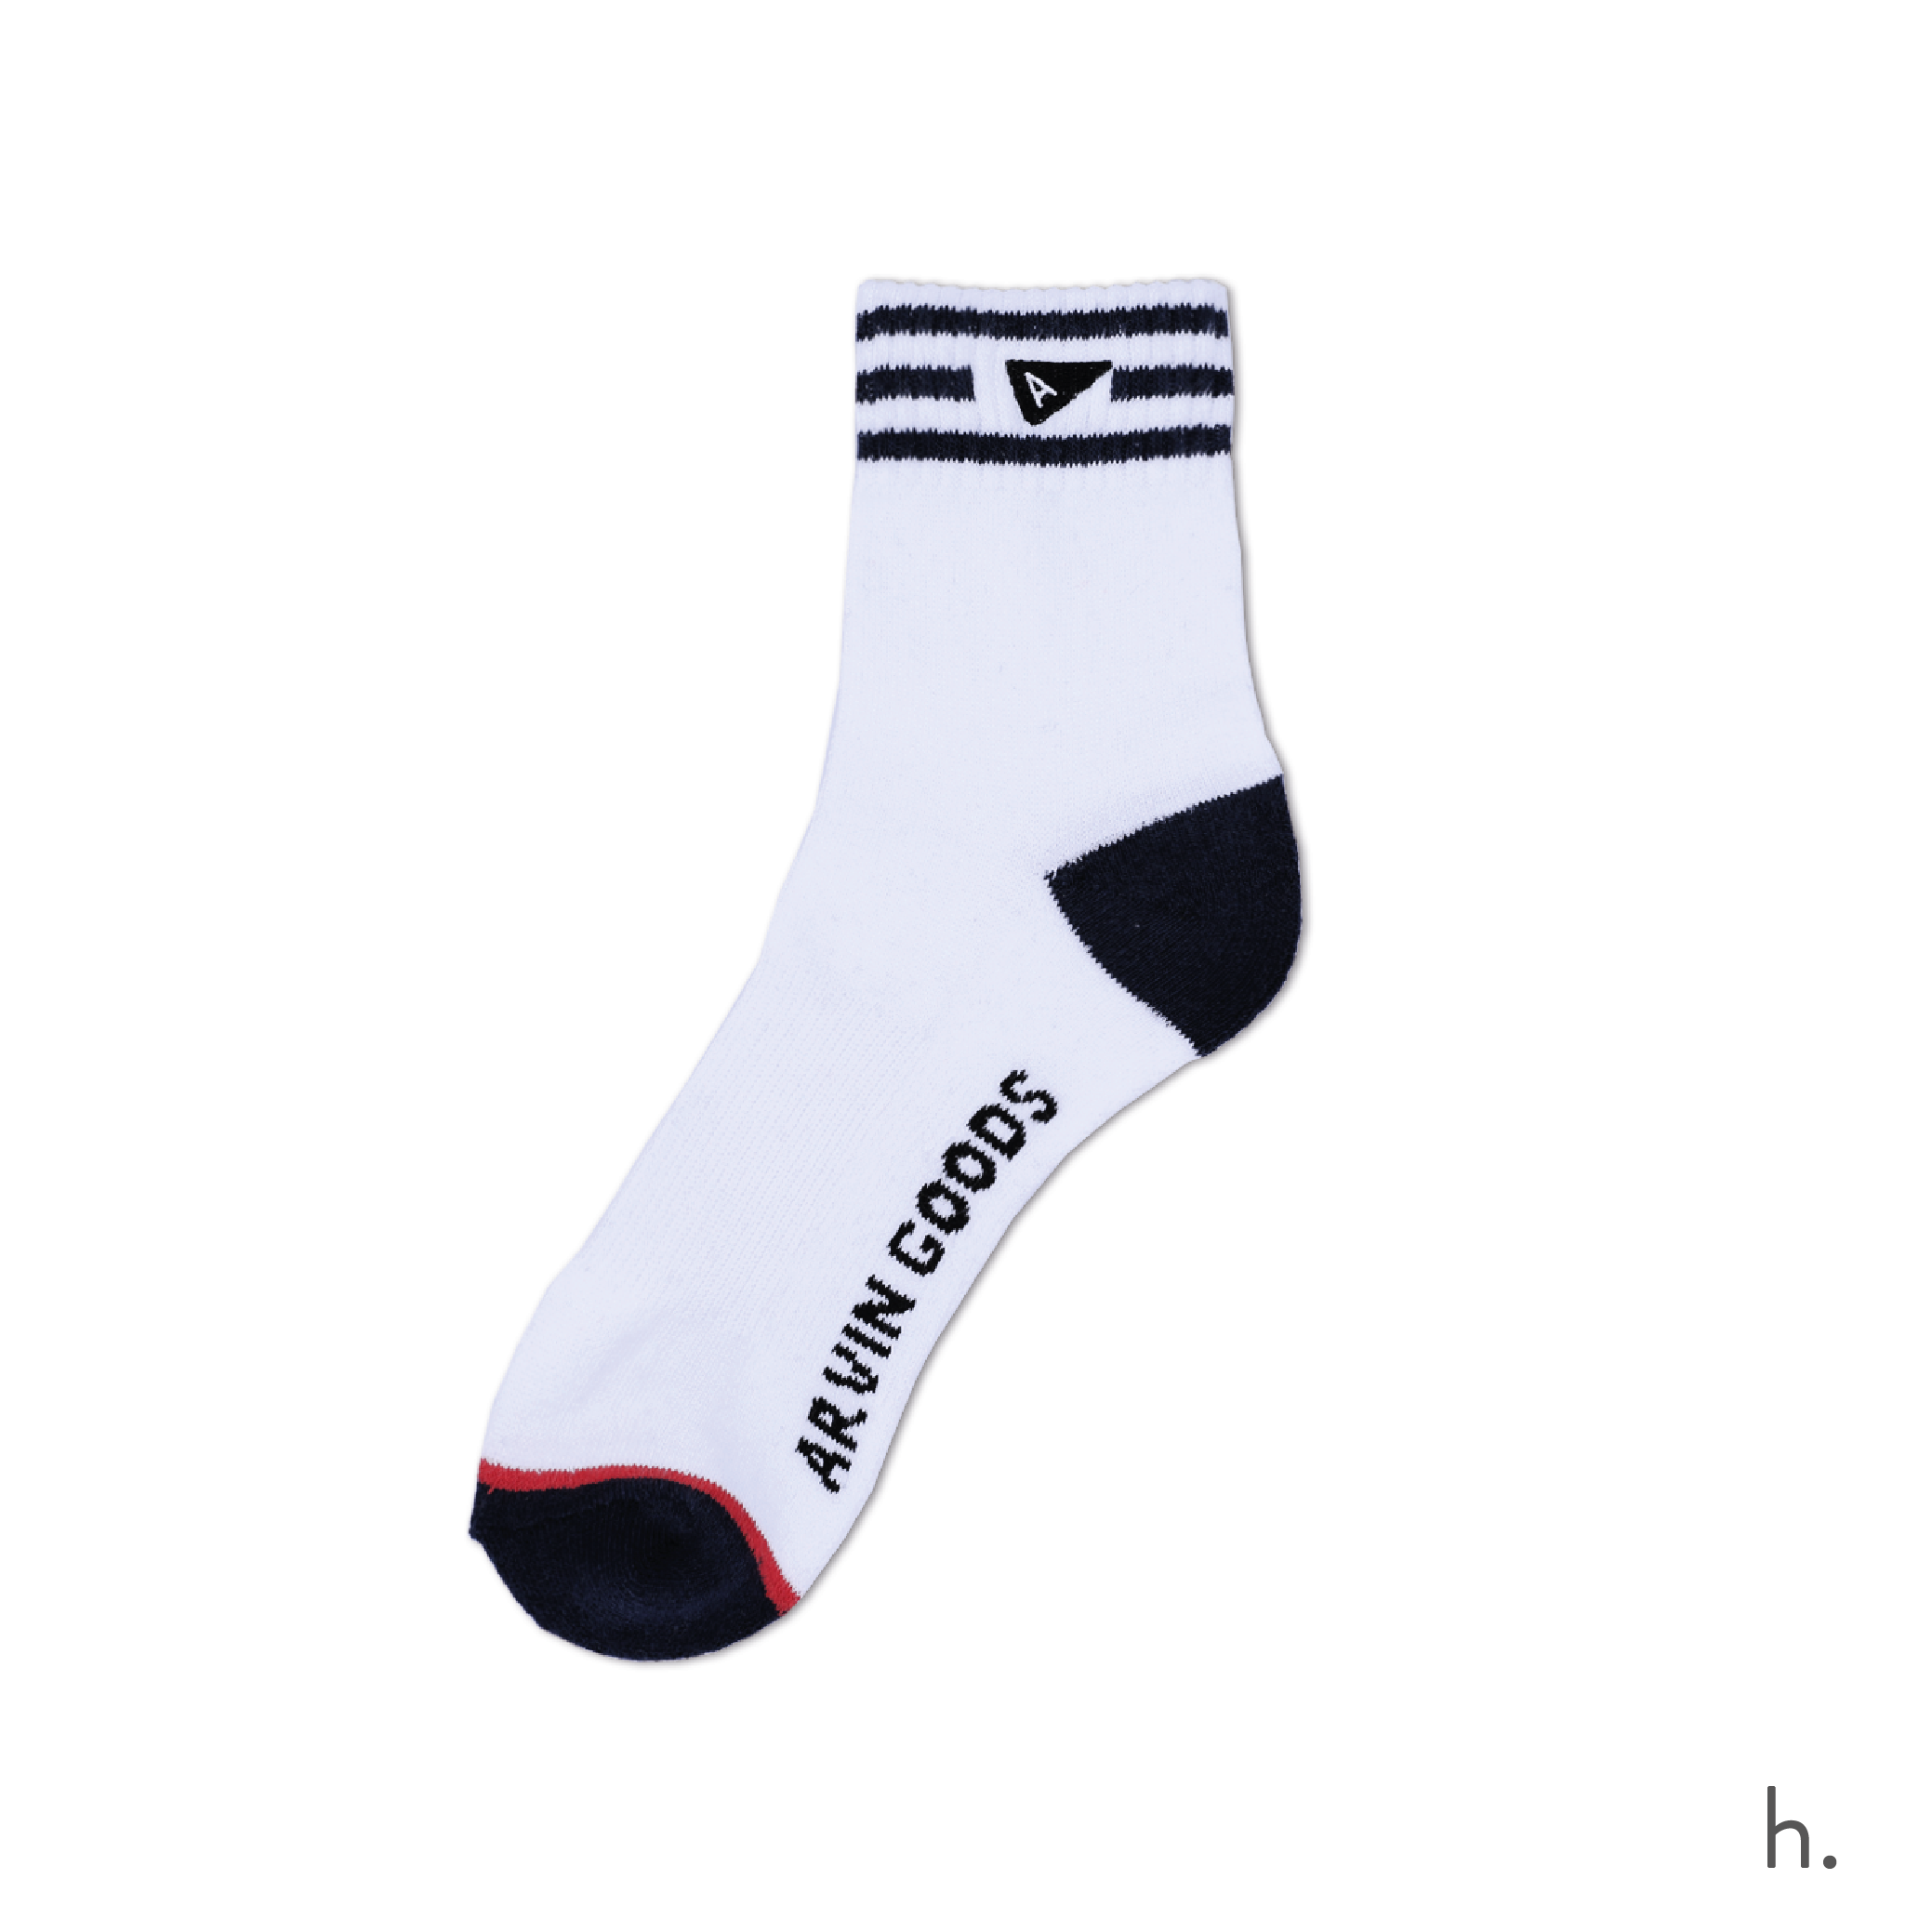 h. Black & White Crew Sock-01-01.png